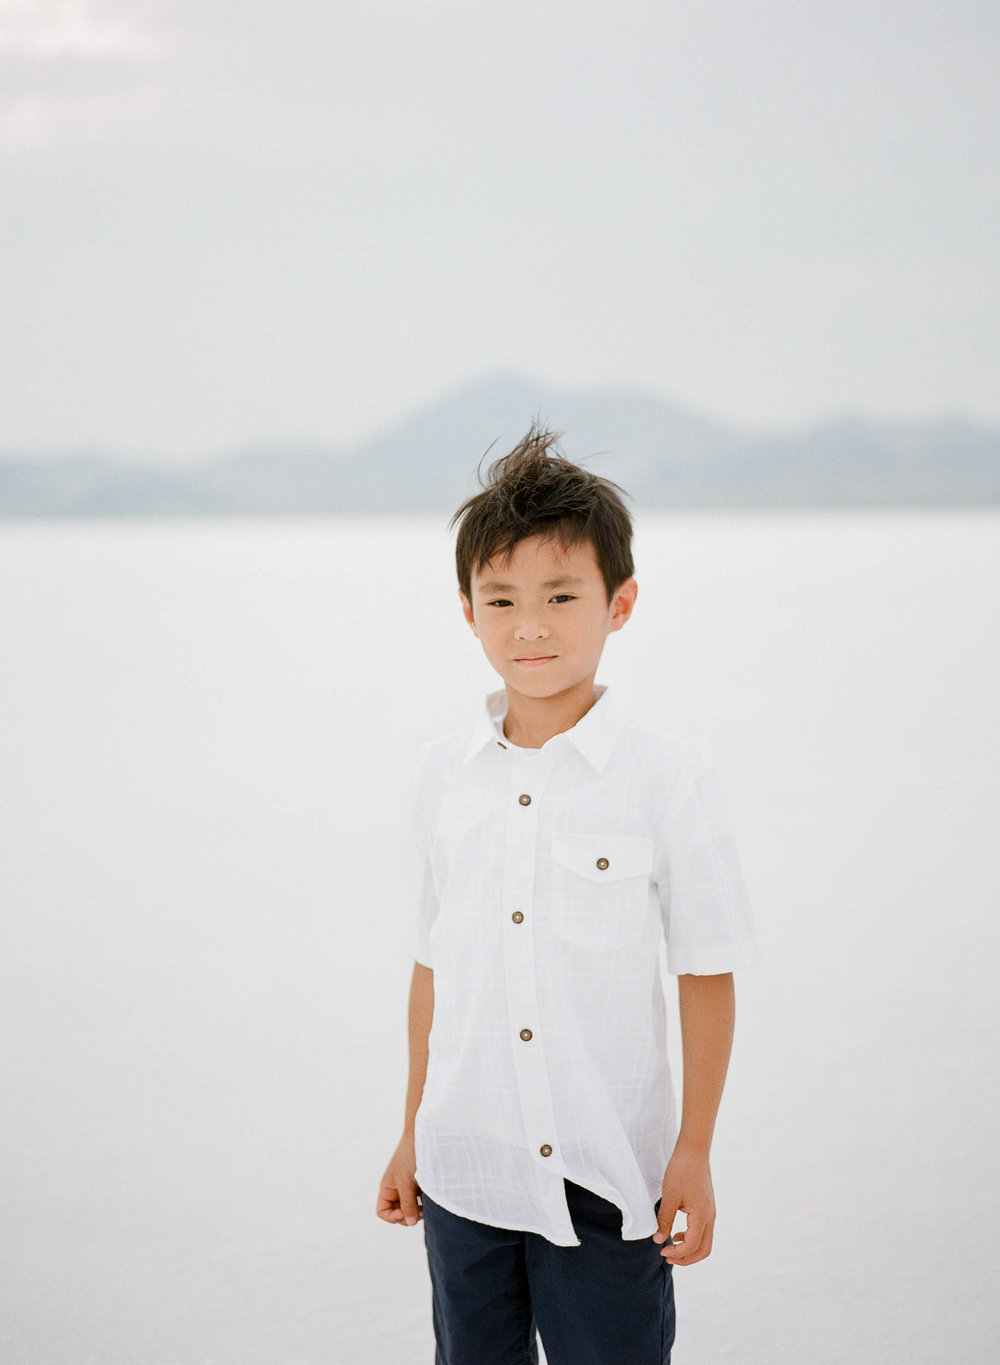 070918_Sandy A La Mode_Family_Utah Salt Flats_Buena Lane Photography_F400_88.jpg